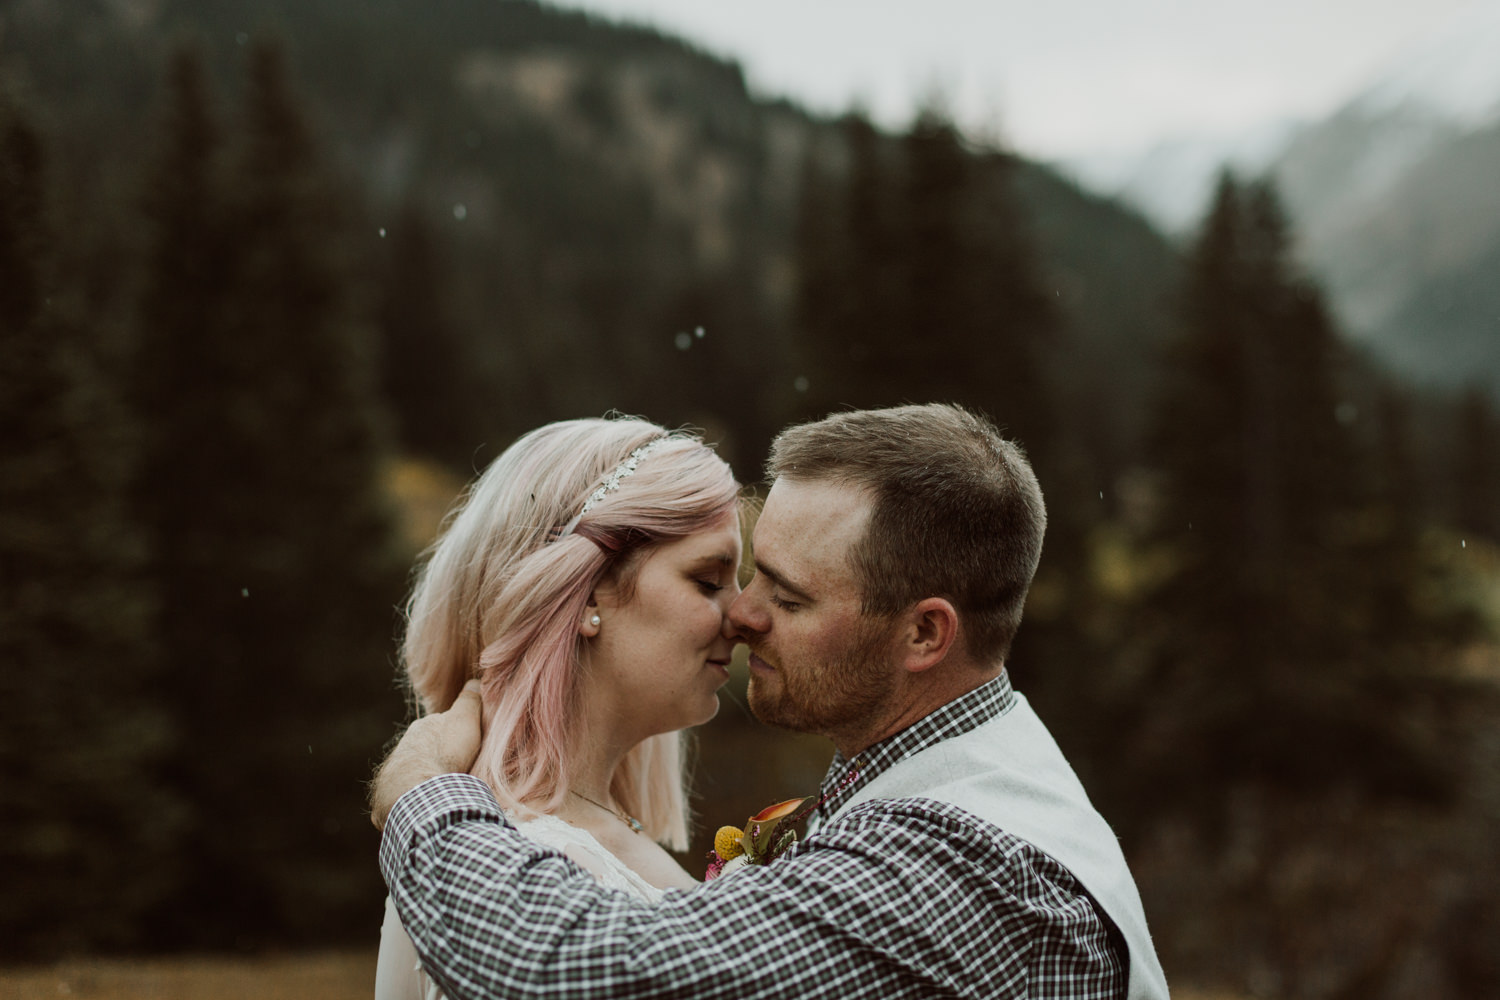 colorado-elopement-photographer-puente-cabin-72.jpg